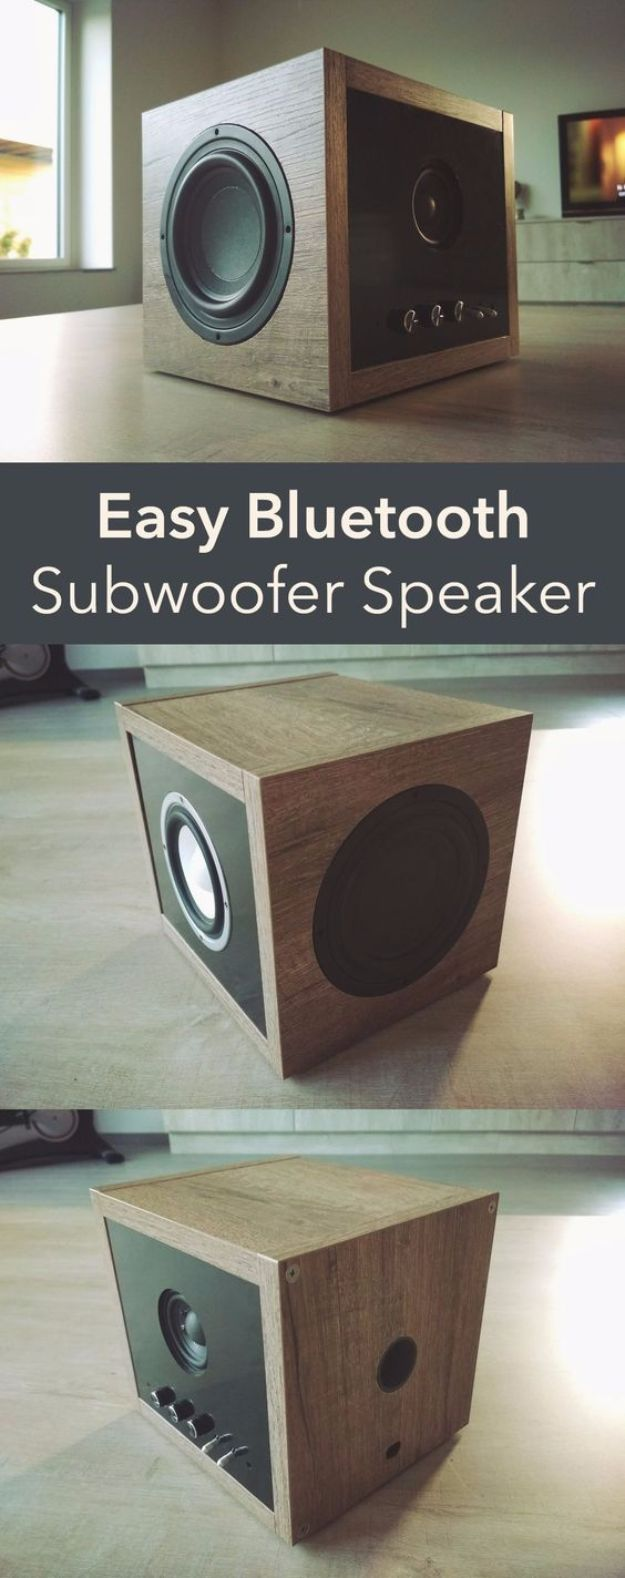 Easy Bluetooth Subwoofer Speaker (80W) #electronicgadgets